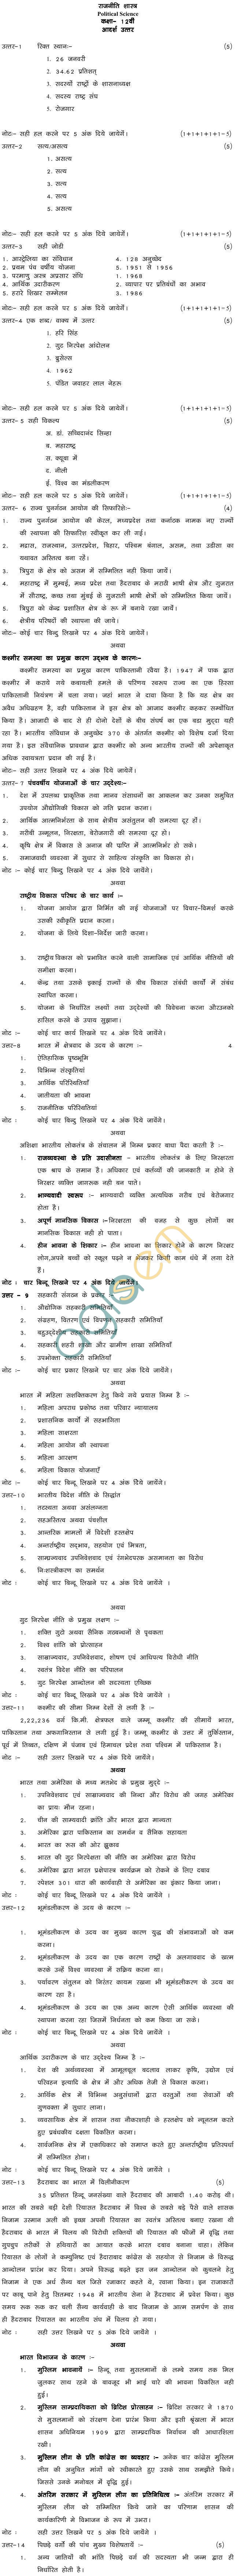 MP Board Class XII Political Science Model Questions & Answers - Set 2